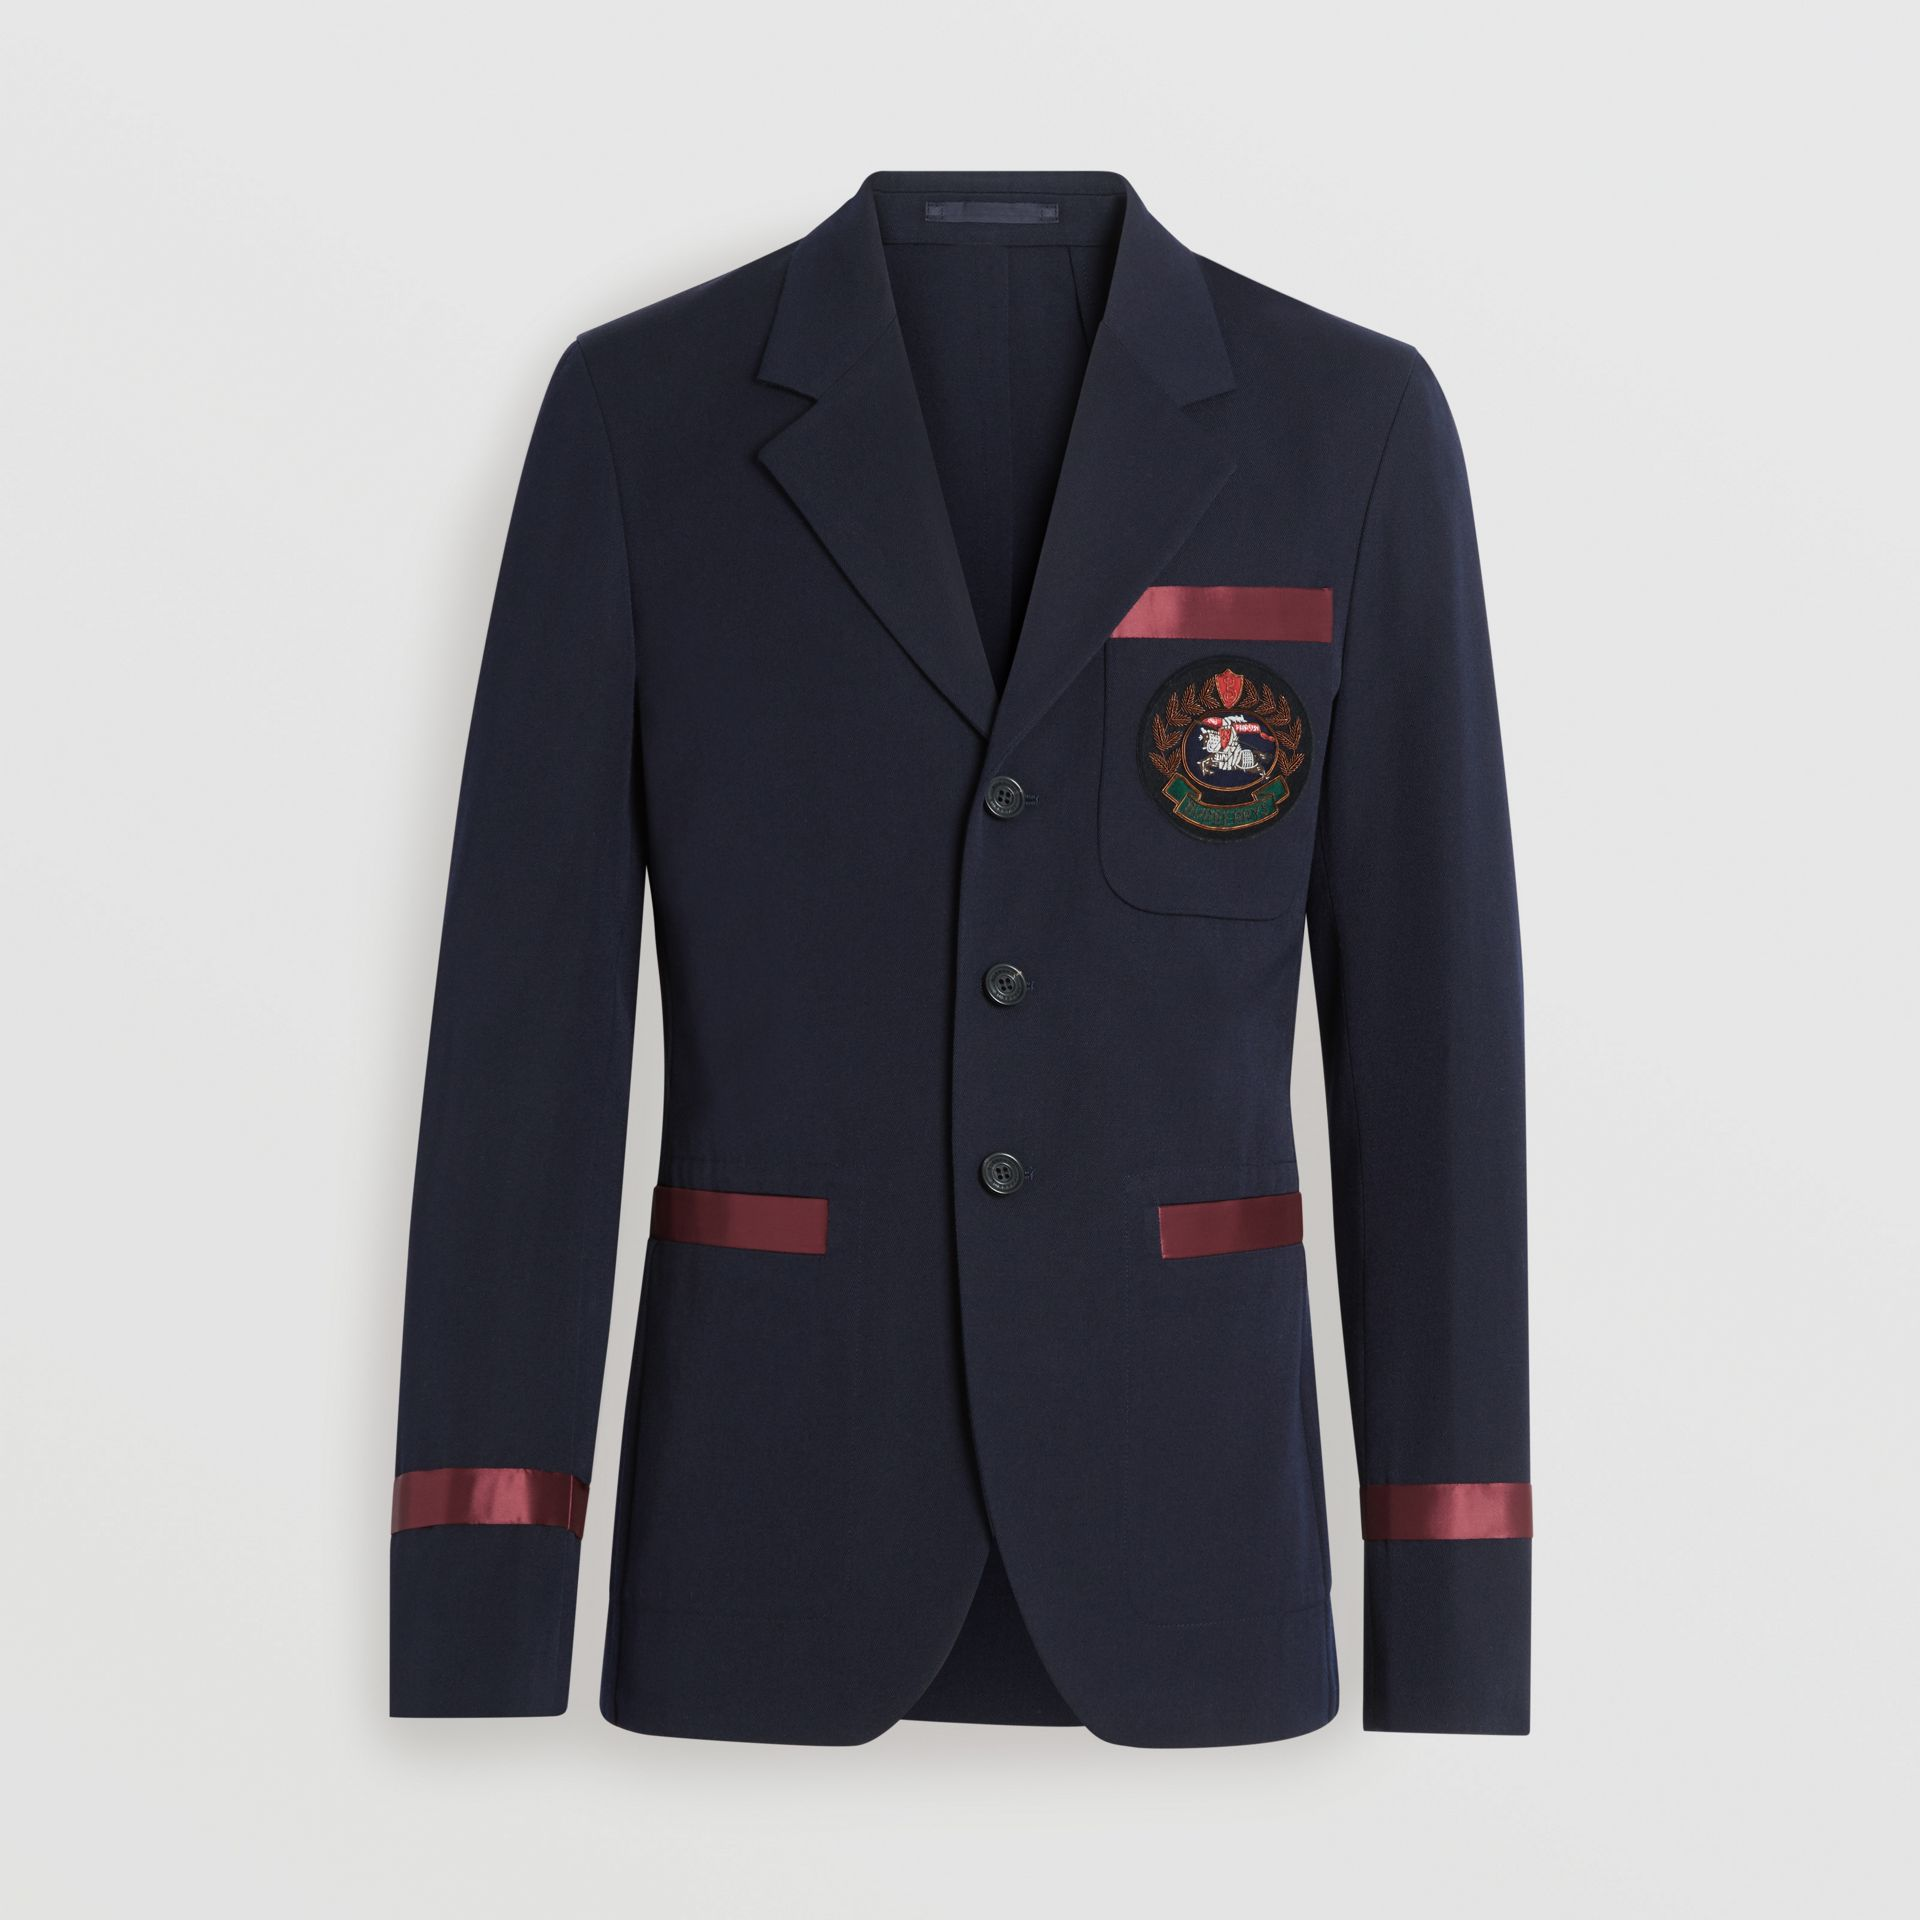 Crest Detail Wool Blend Club Blazer in Navy - Men | Burberry - gallery image 3